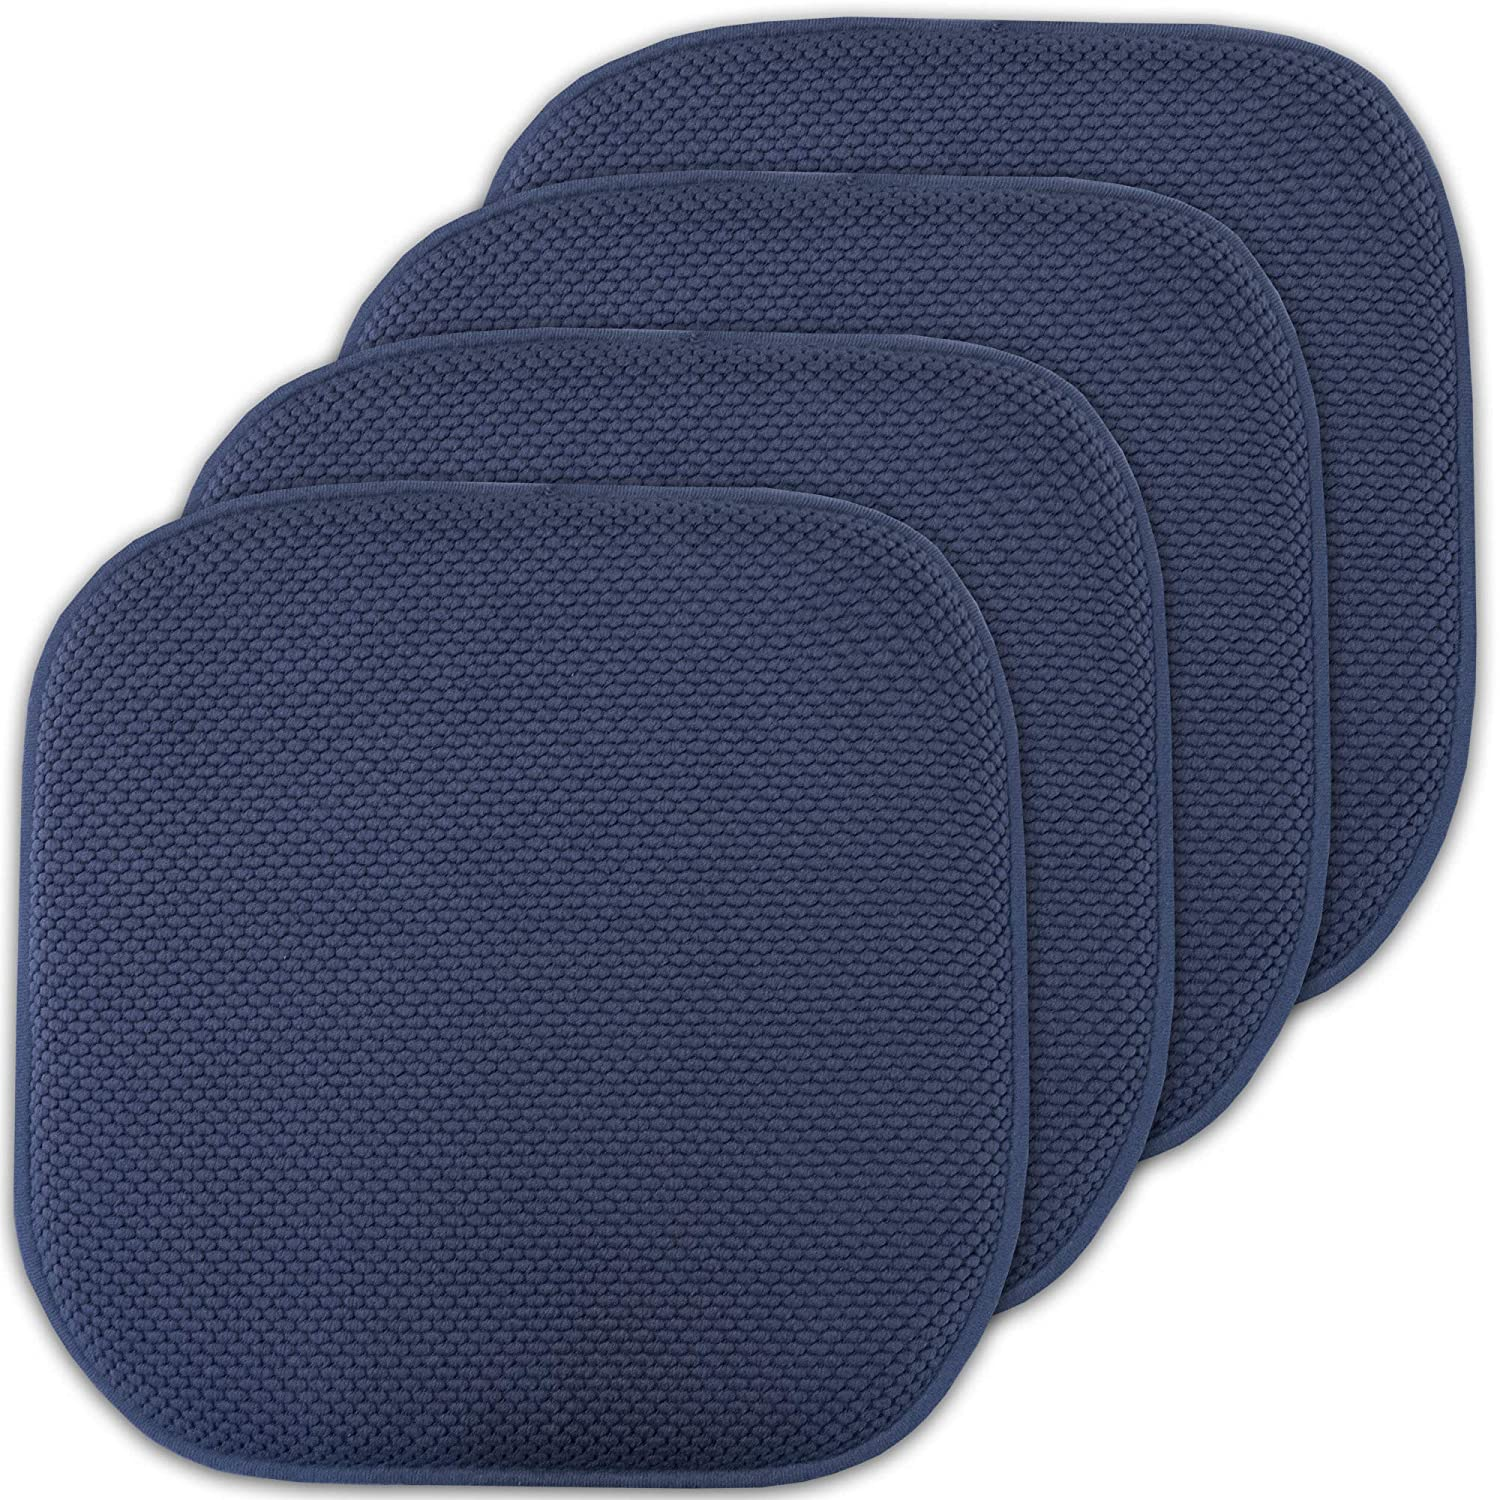 "Sweet Home Collection Memory Foam Chair Cushion Honeycomb Pattern Solid Color Slip Non Skid Rubber Back Ultimate Comfort and Softness Rounded Square 16"" x 16"" Seat Cover, 4 Pack, Navy 4 Piece"